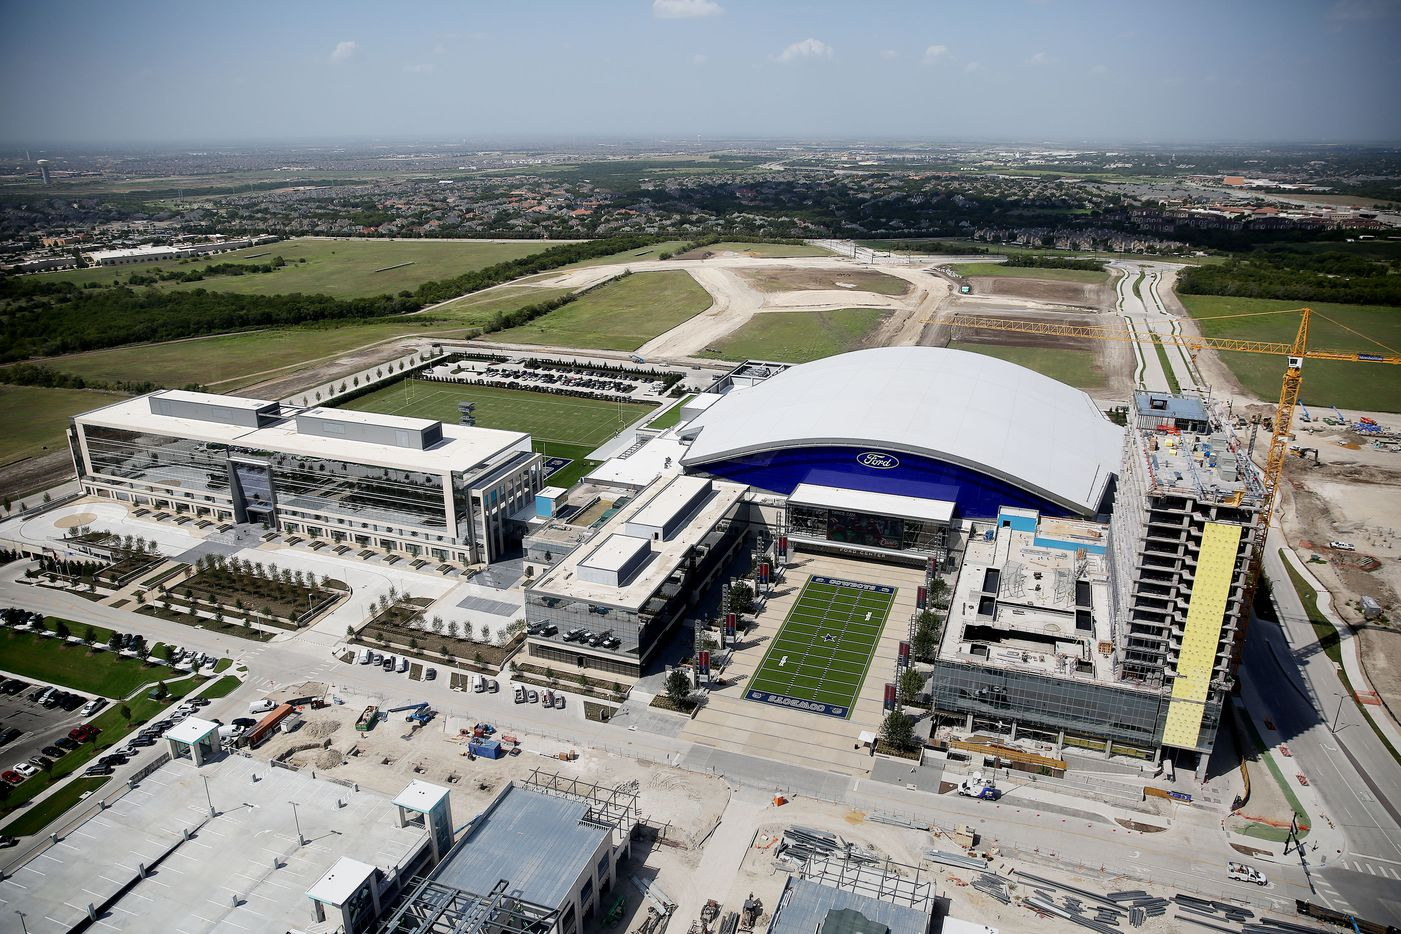 An aerial view of the Dallas Cowboys headquarters at The Star from the Cowboys new corporate helicopter in Frisco, Texas, on Thursday, Sept. 8, 2016. The aircraft is a customized Airbus H145 corporate helicopter.